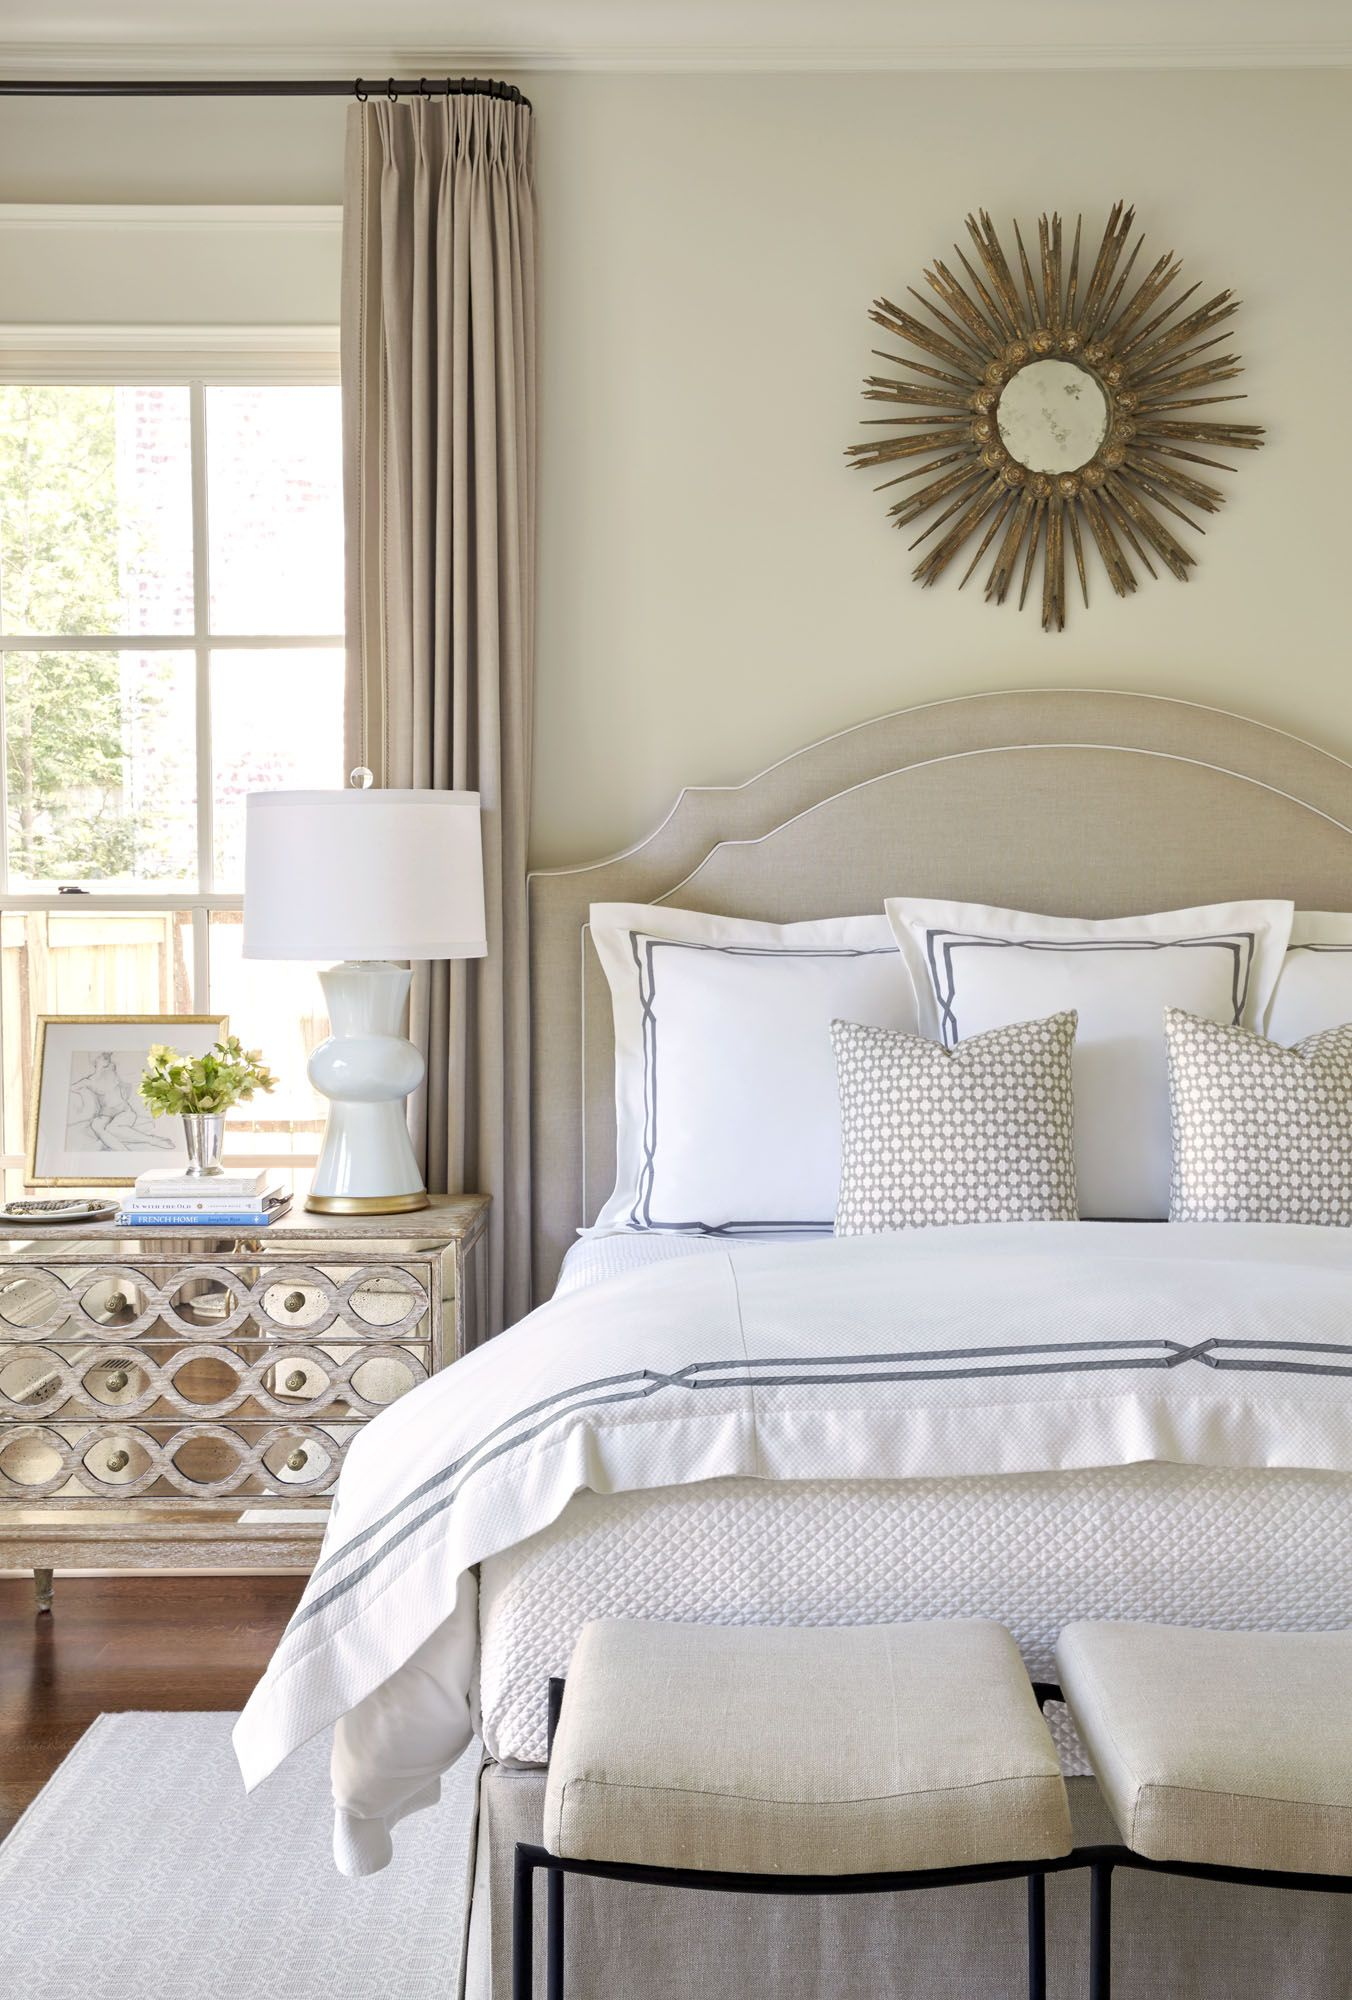 Classic bedroom style with neutral upholstered headboard